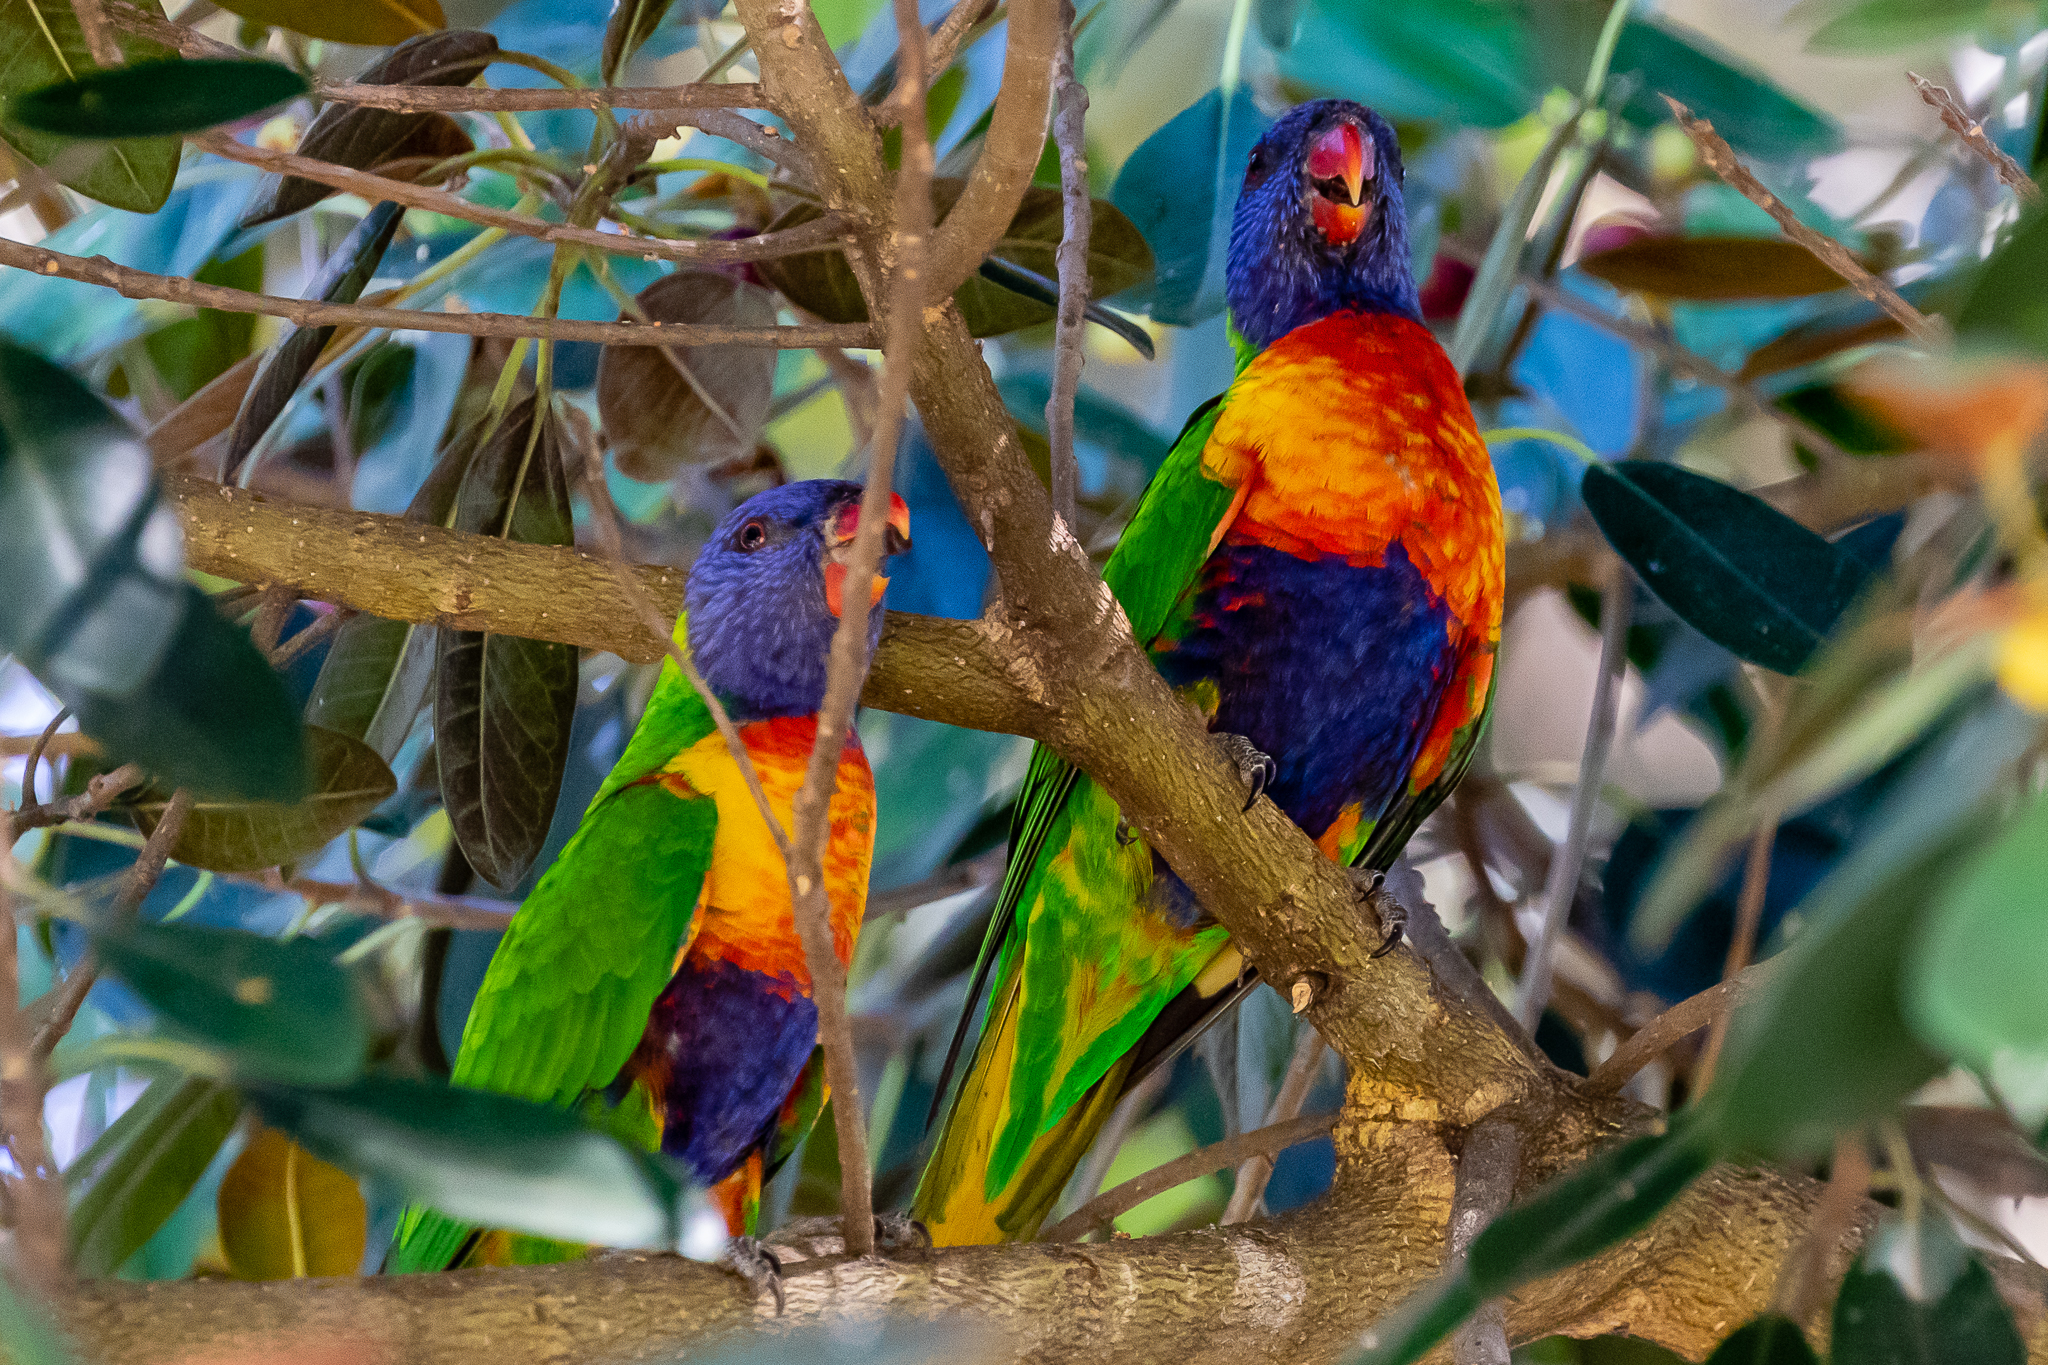 As in other parts of Australia, the Rainbow Lorikeet makes its noisy and aggressive presence in the city of Perth and its surrounds.